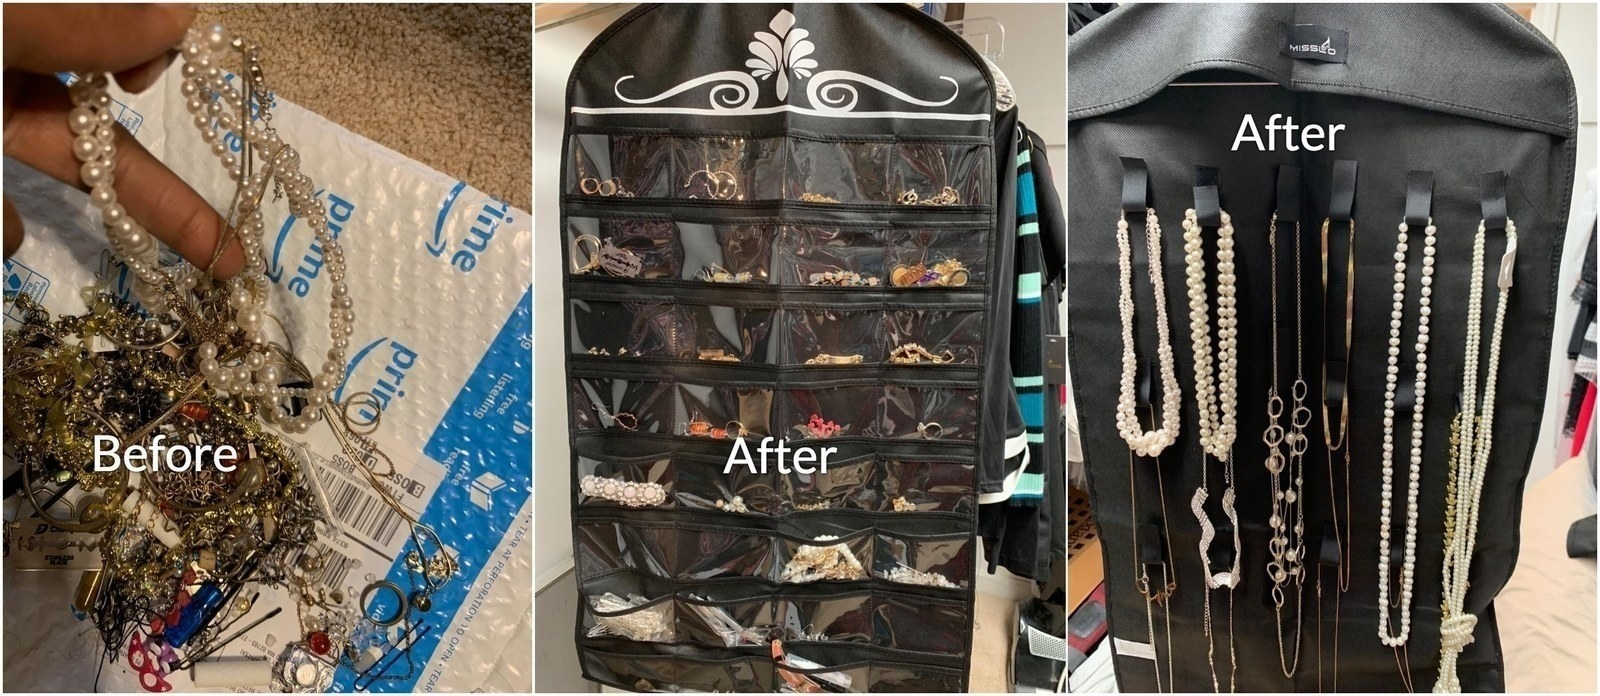 Before-and-after photos showing a tangled pile of jewelry next to organized jewelry in a hanging organizer